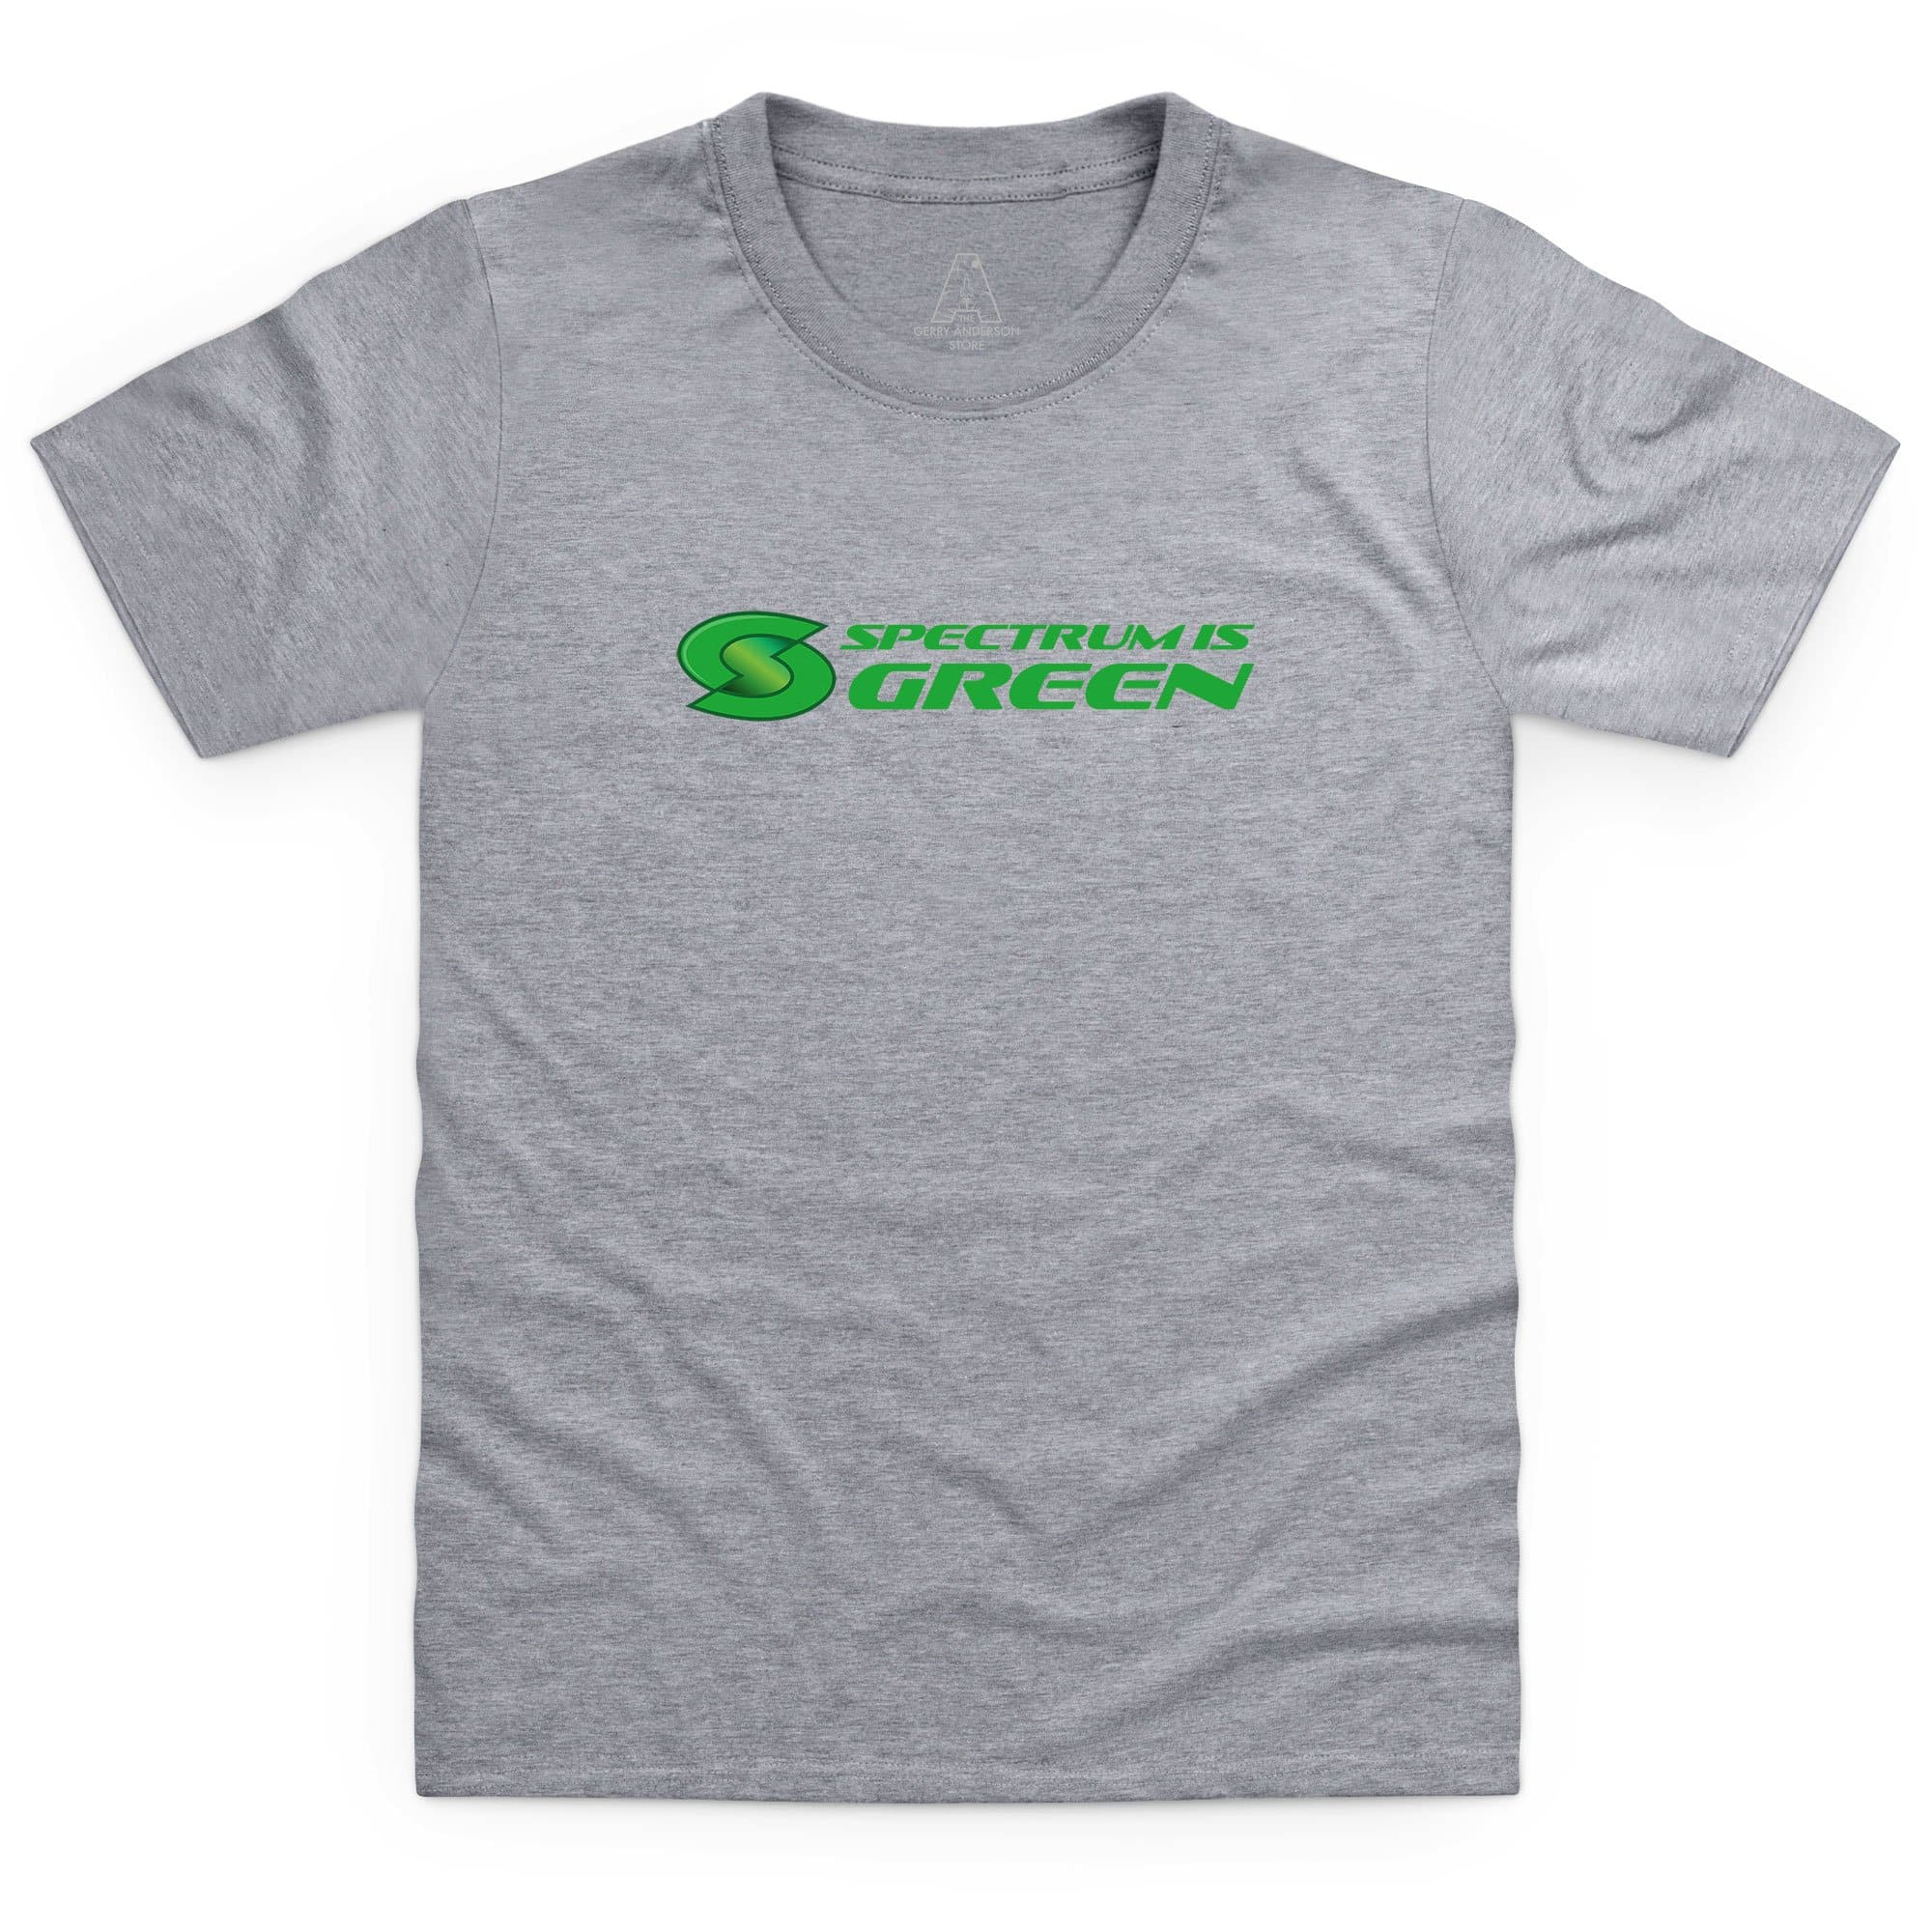 Spectrum Is Green Kid's T-Shirt [Official & Exclusive] - The Gerry Anderson Store